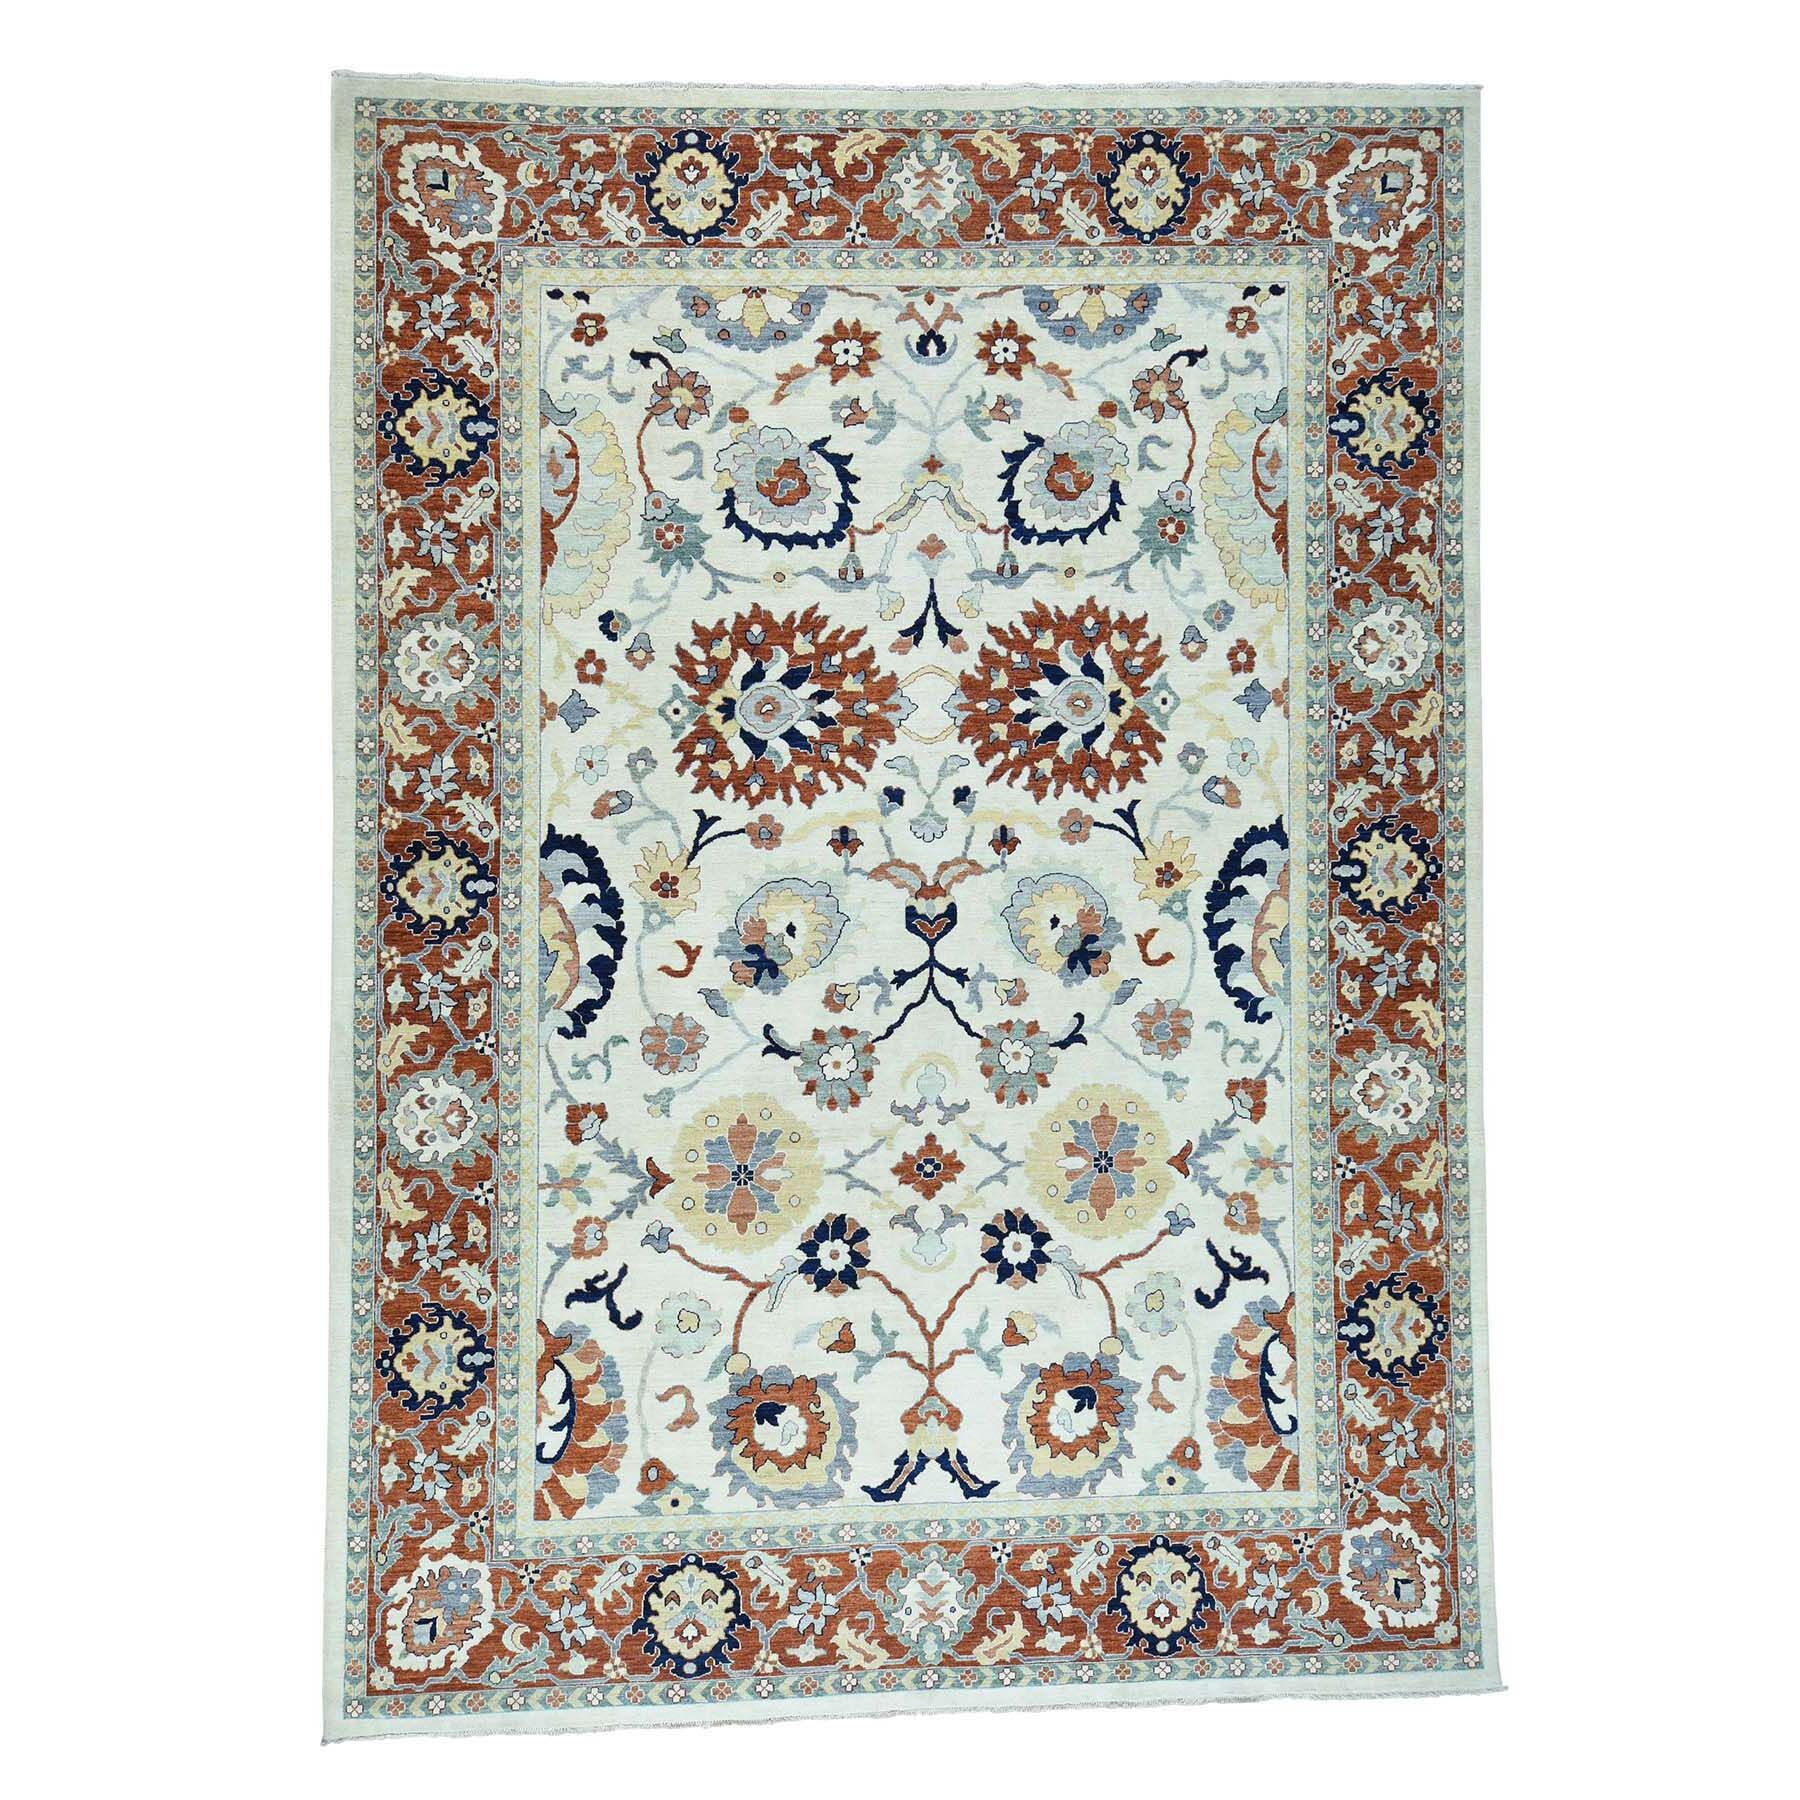 One-of-a-Kind Le Sirenuse Sultanabad Hand-Knotted Ivory Area Rug Rug Size: Rectangle 9'1